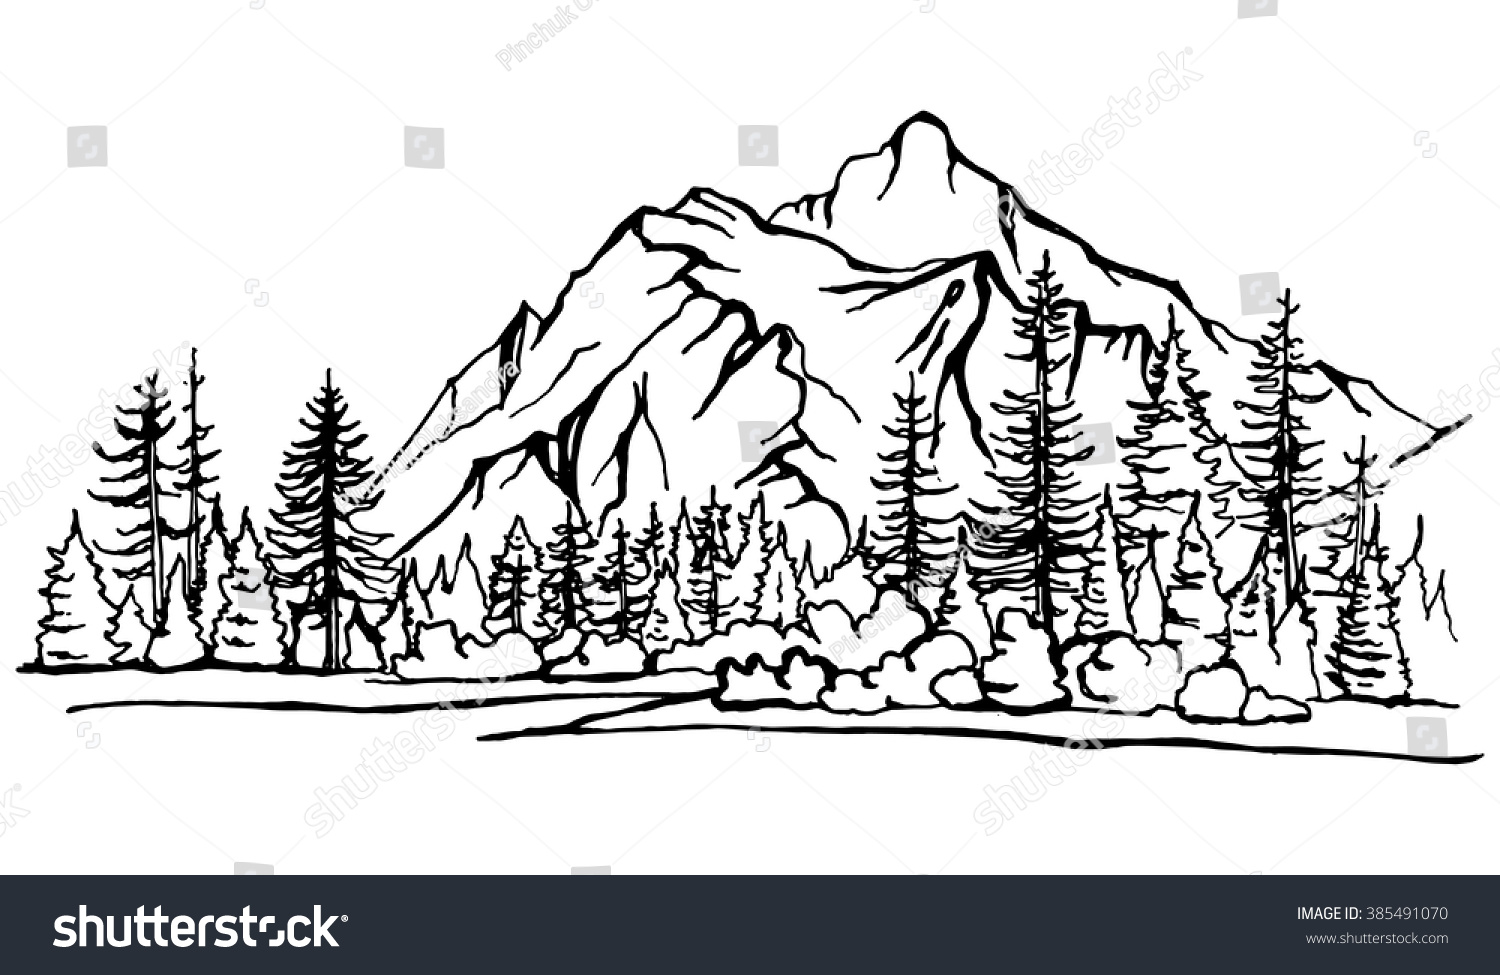 how to draw a pine tree forest